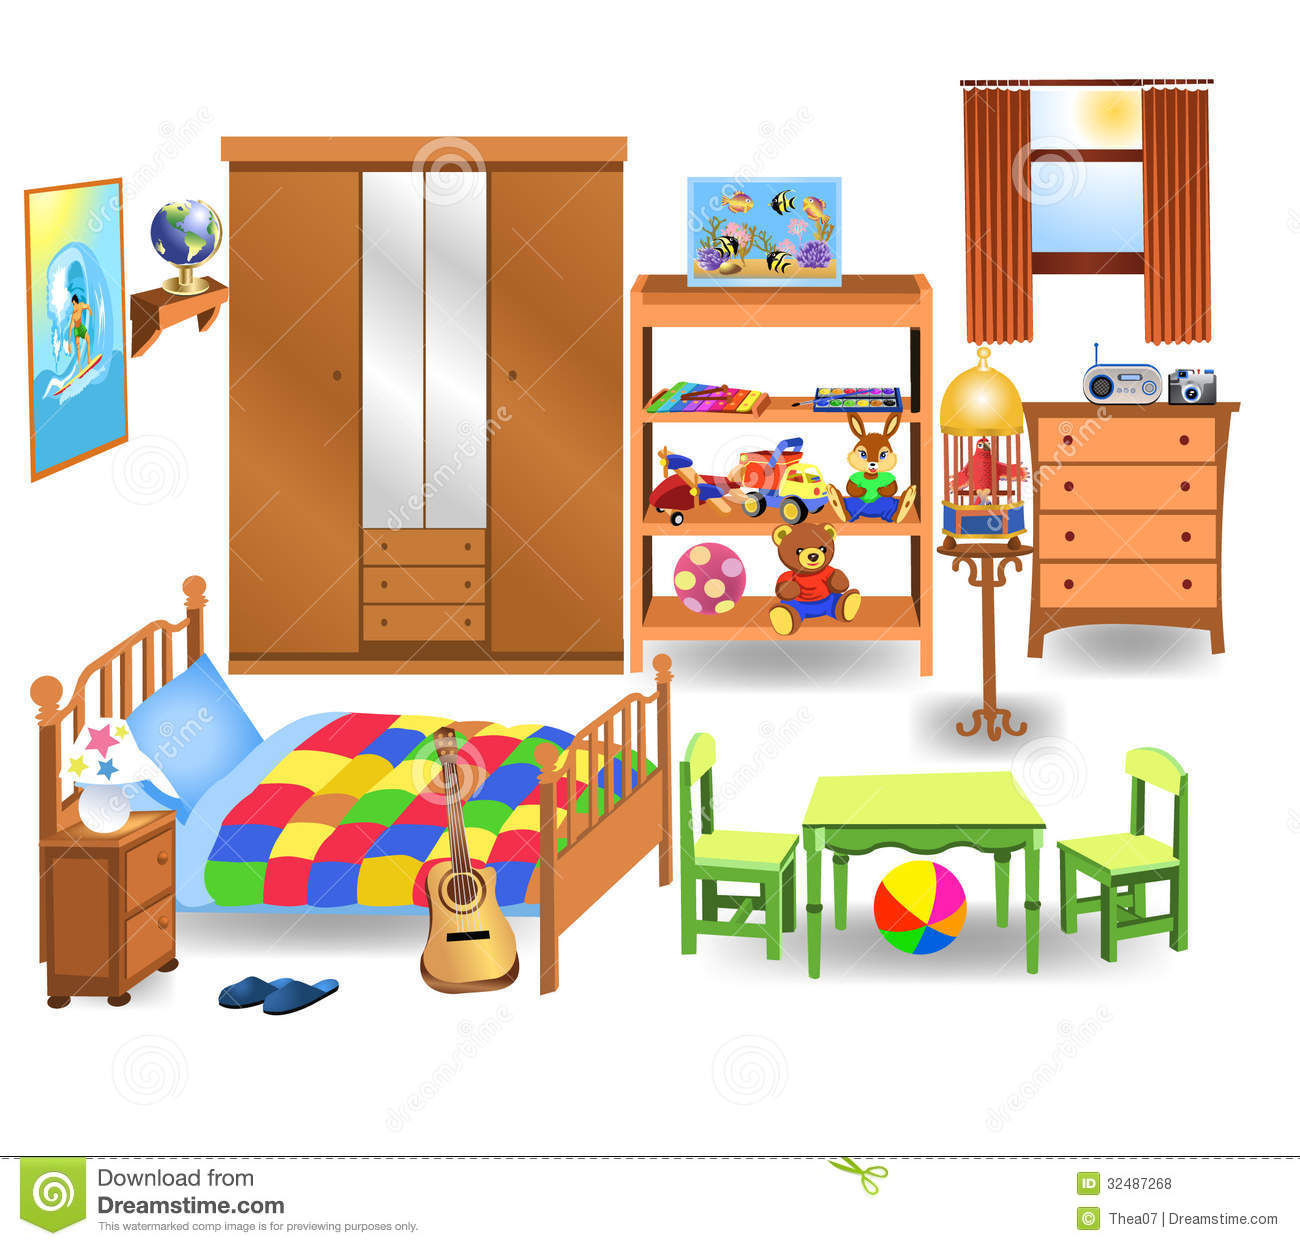 Bedroom furniture stock photo. Image of globe, drawers - 32487268